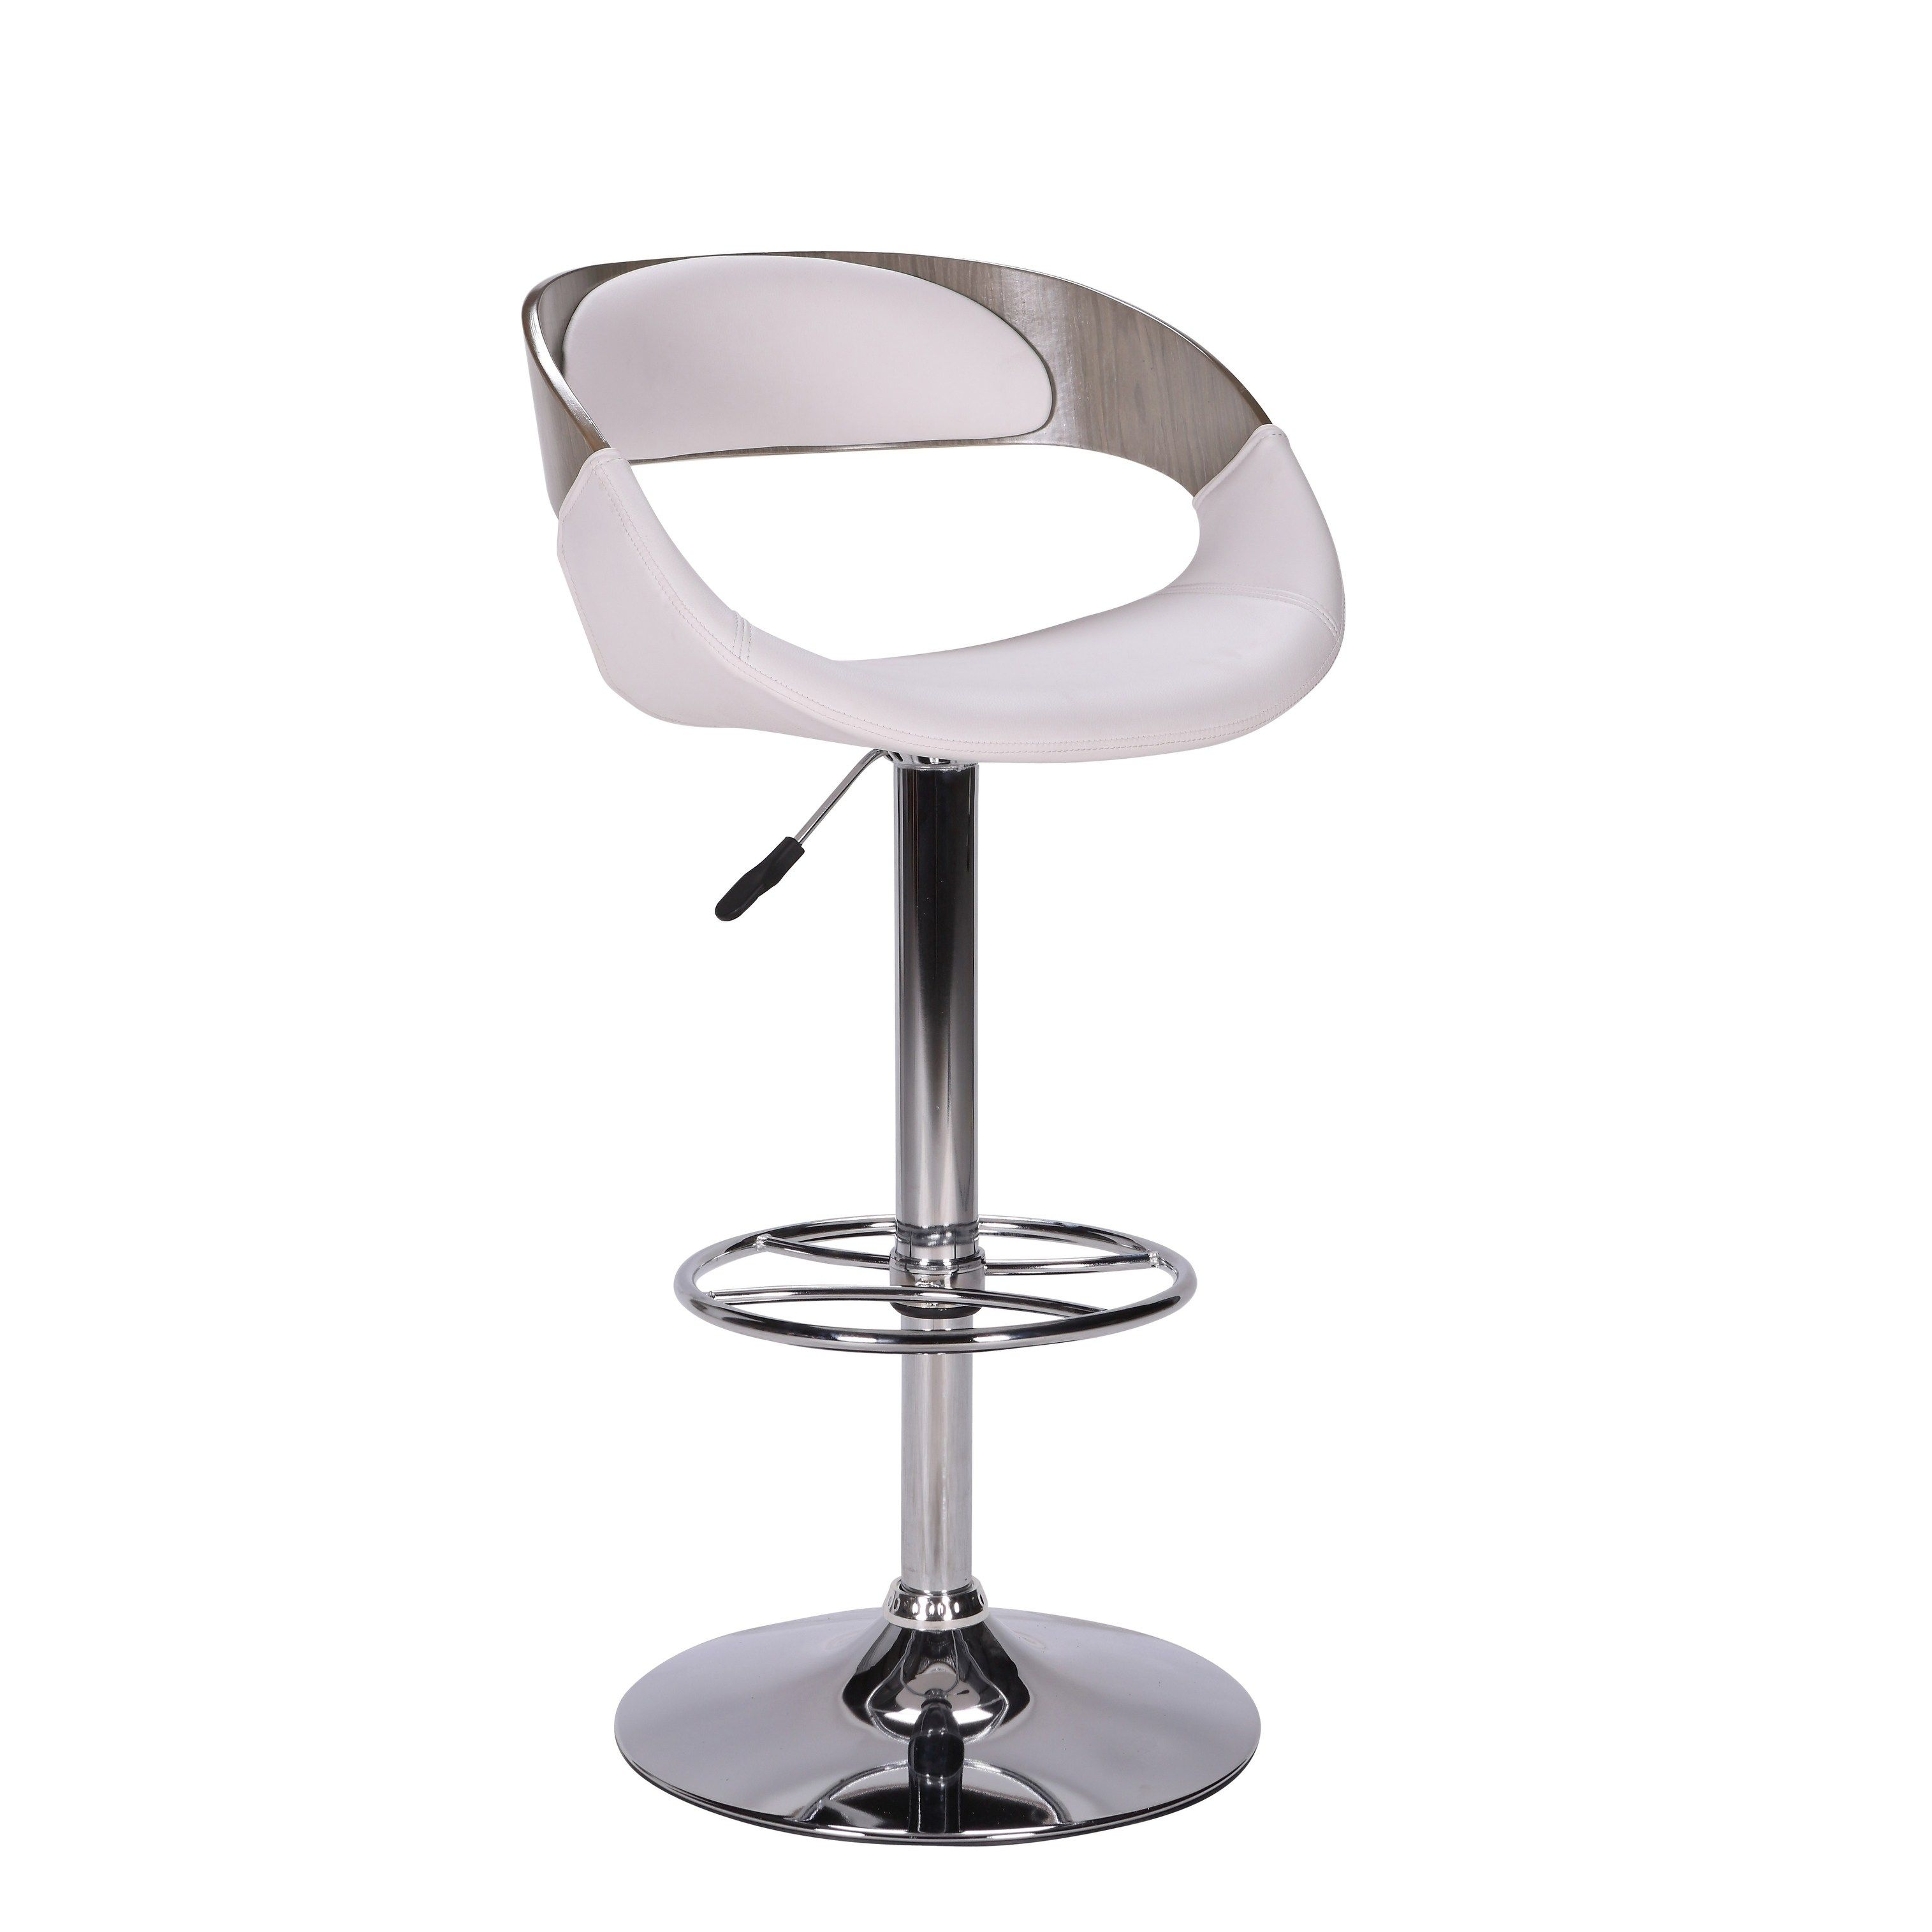 Somette 5231 Curved Open Wood Back Adjustable Stool White Faux